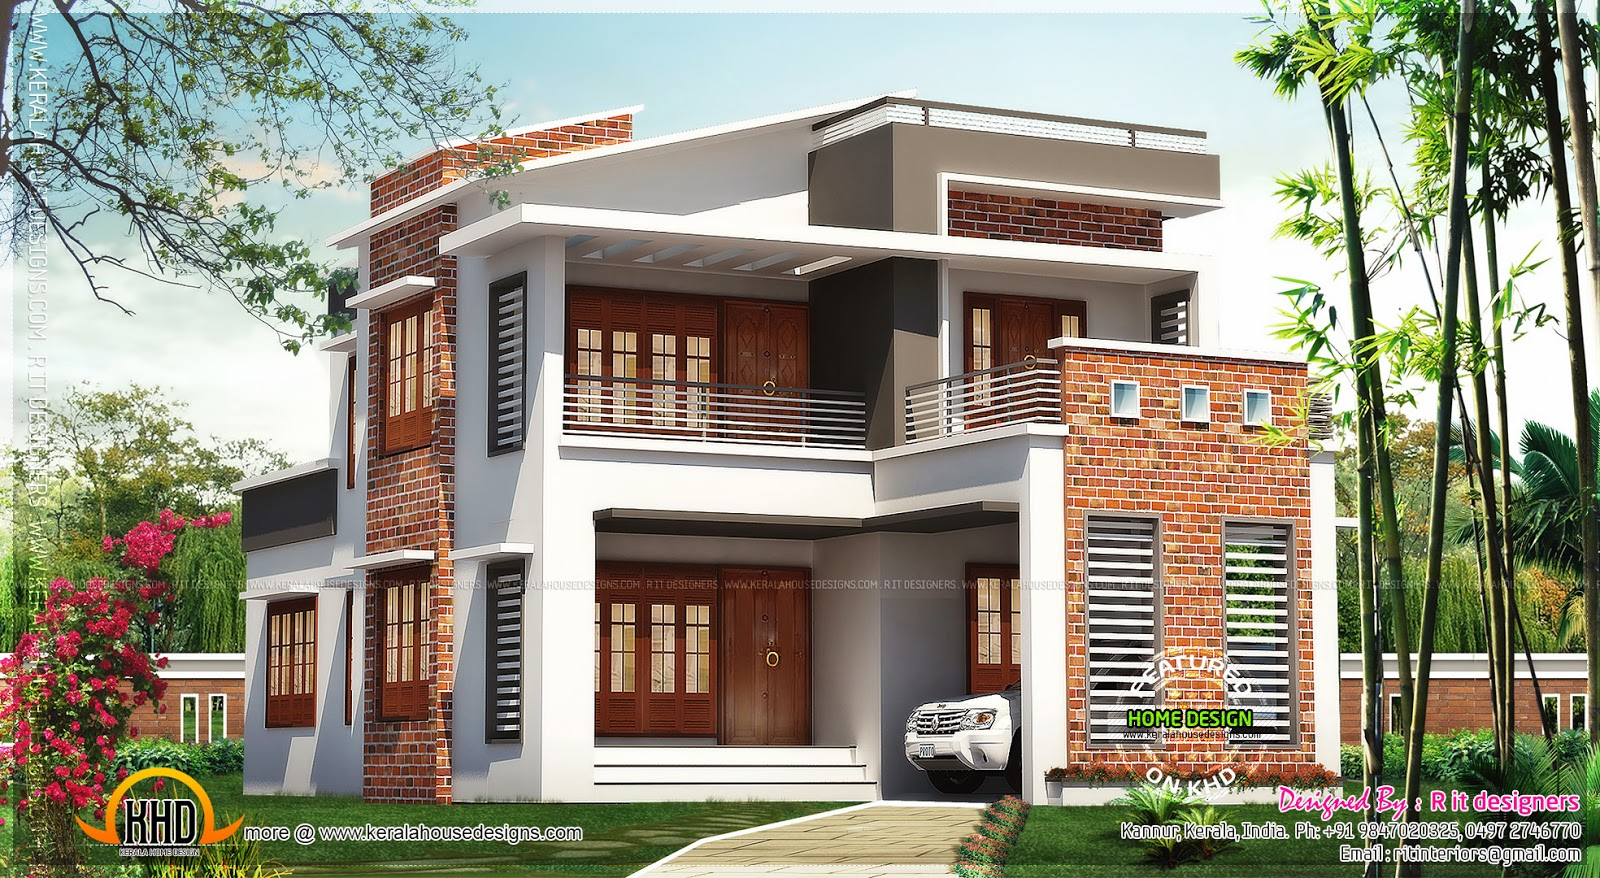 Brick mix house exterior design kerala home design and for House front model design